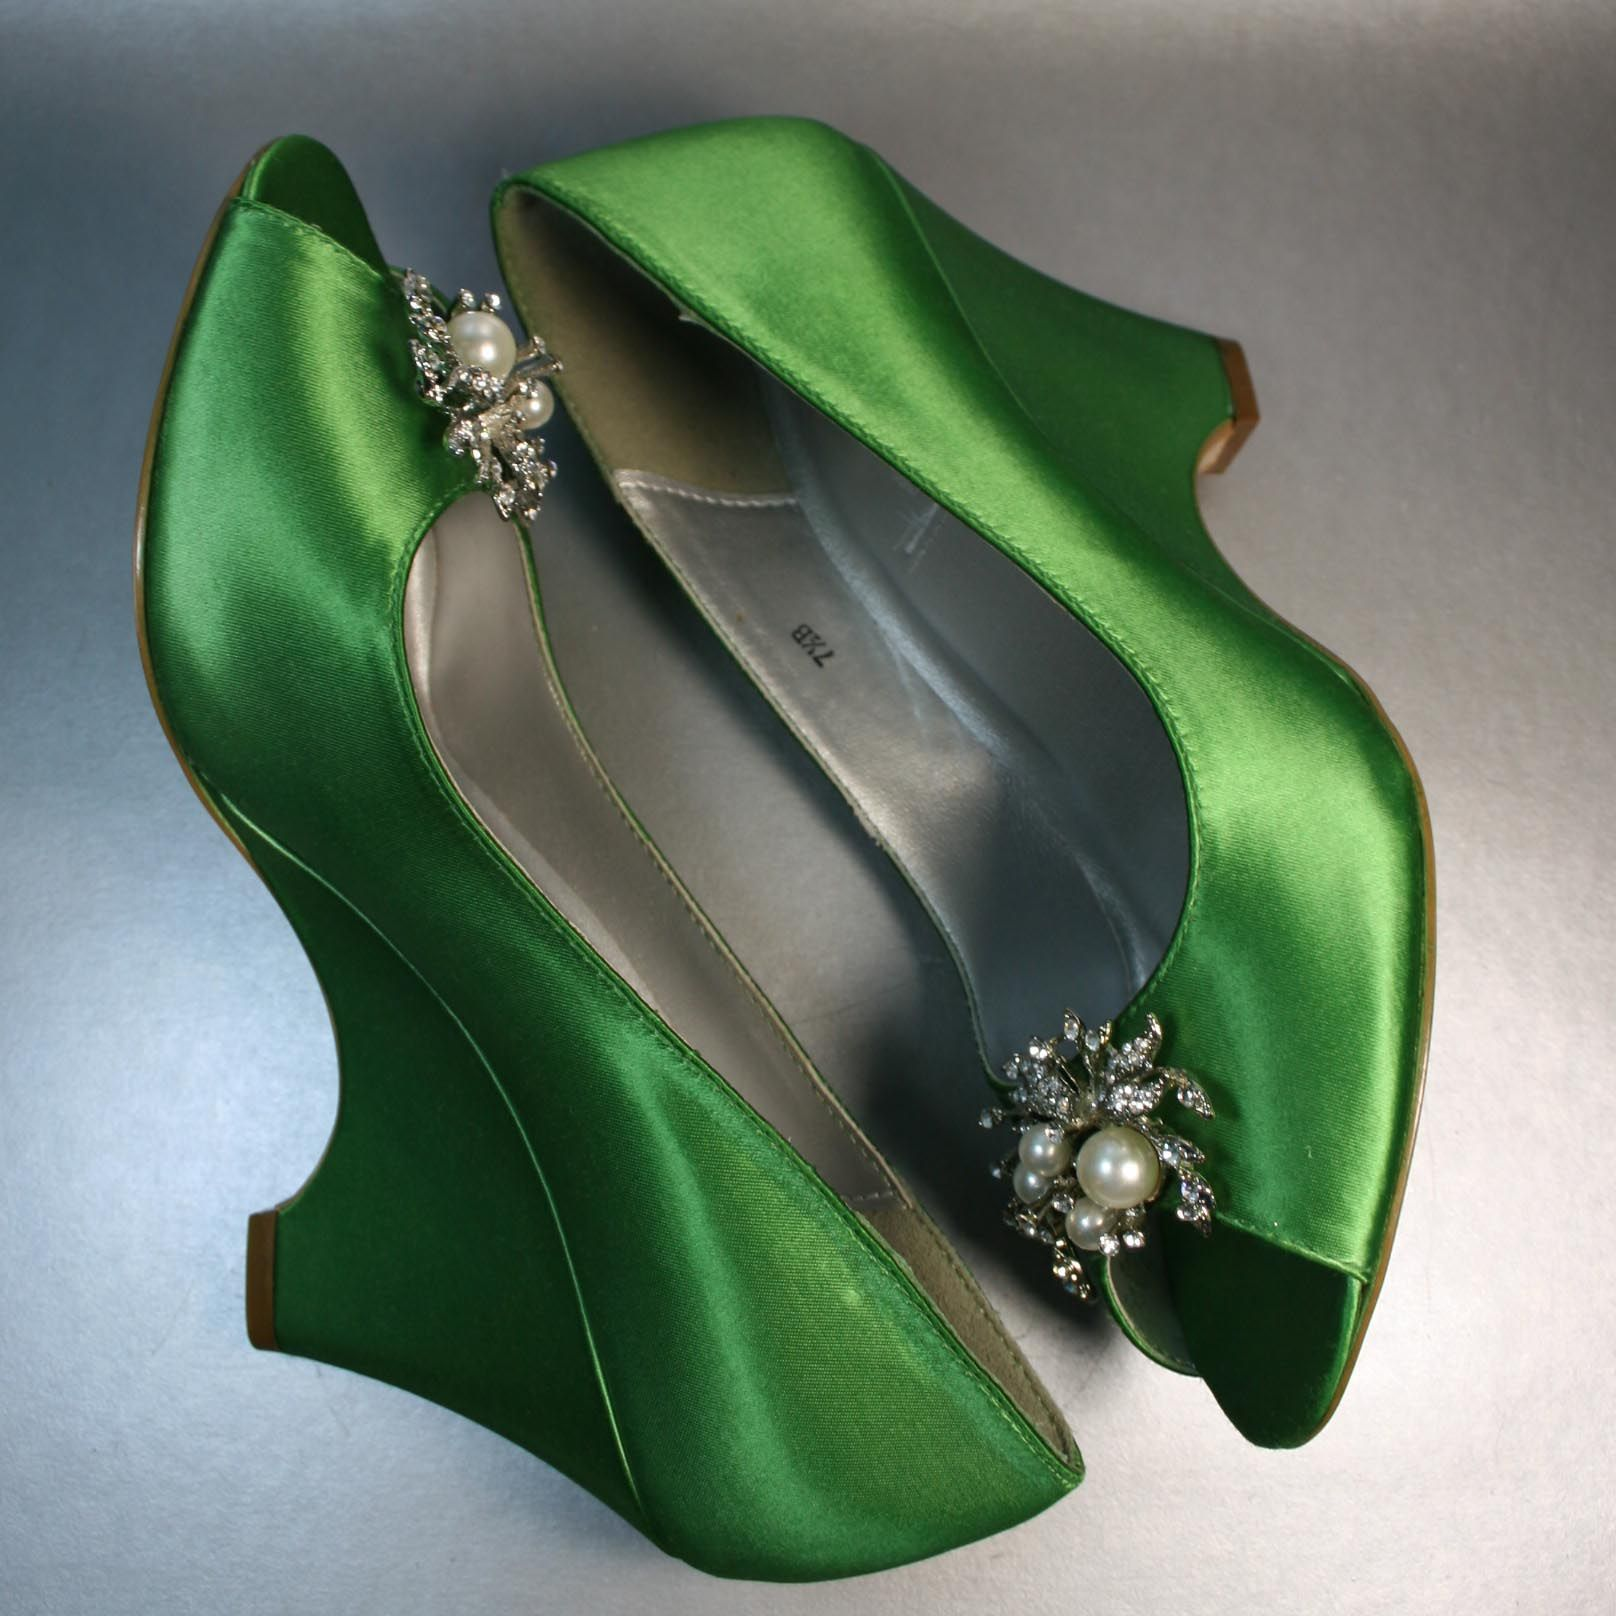 Images of Green Shoes Wedding - Weddings Pro